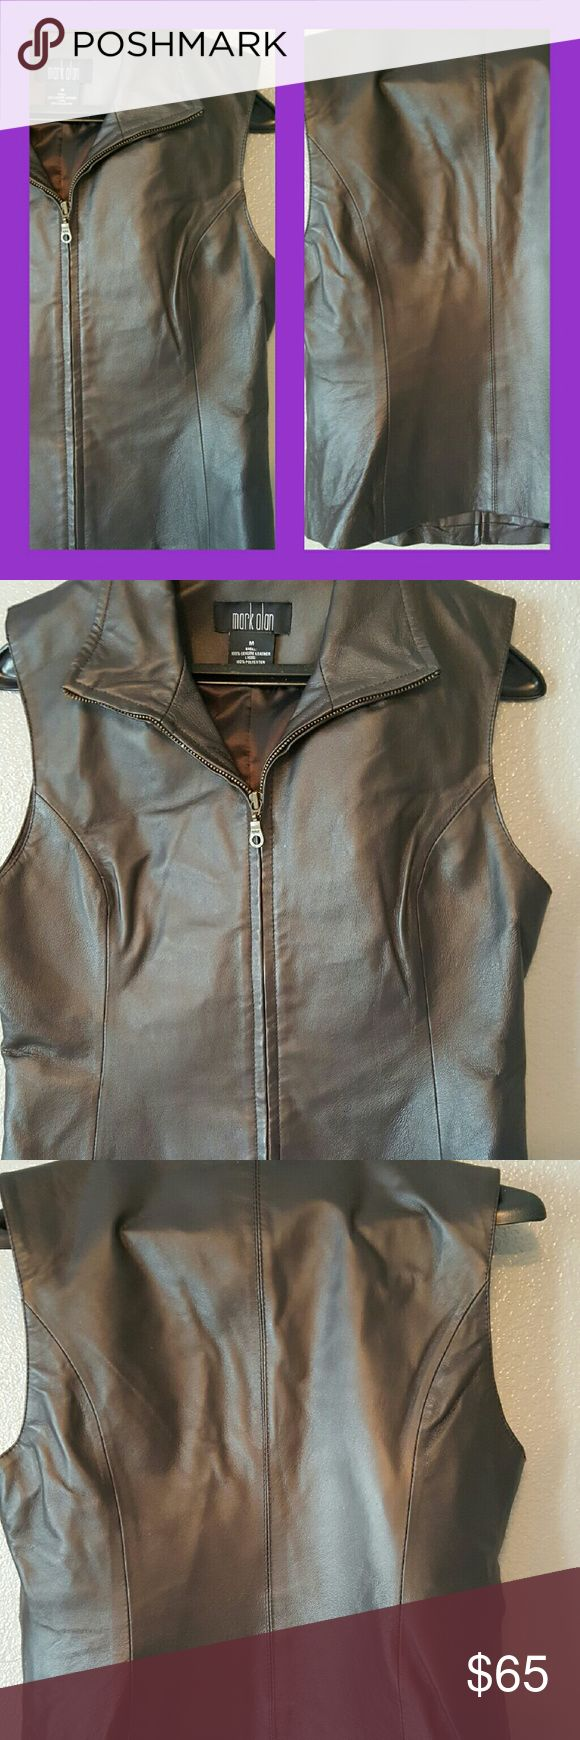 One day sale!!! Must sale today. 100% Real leather sleeveless vest. Add a punch to any outfit with this jewel. Mark Alan Jackets & Coats Vests